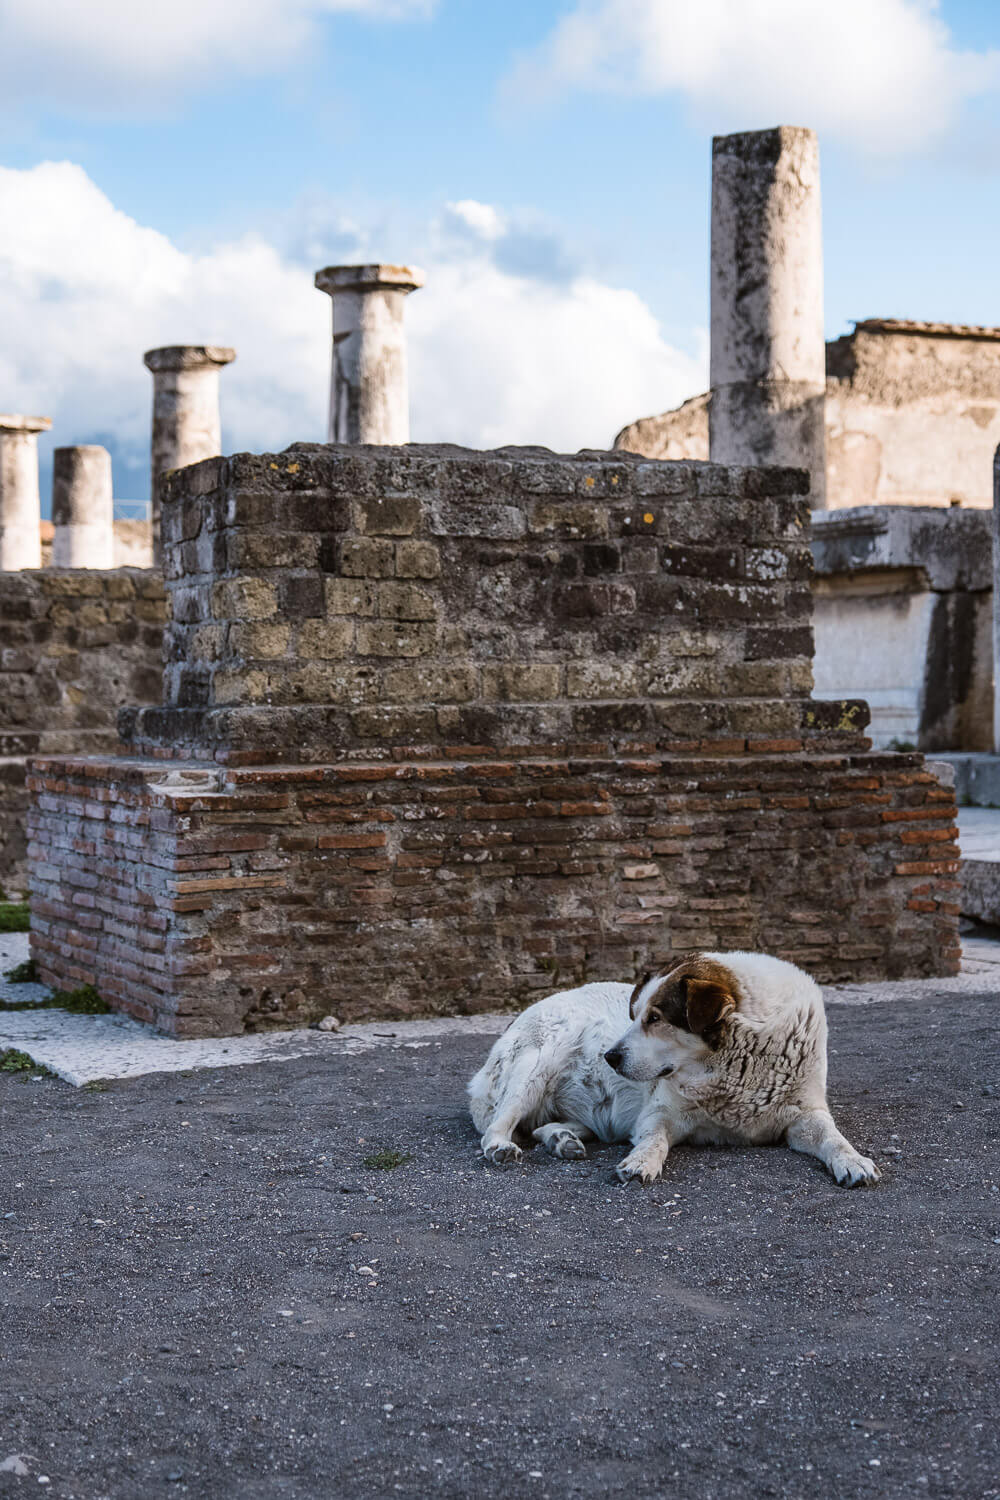 """Stray dog laying in the forum of Pompeii, Italy. Travel photography and guide by © Natasha Lequepeys for """"And Then I Met Yoko"""". #pompeii #italy #fujifilm #travelphotography"""